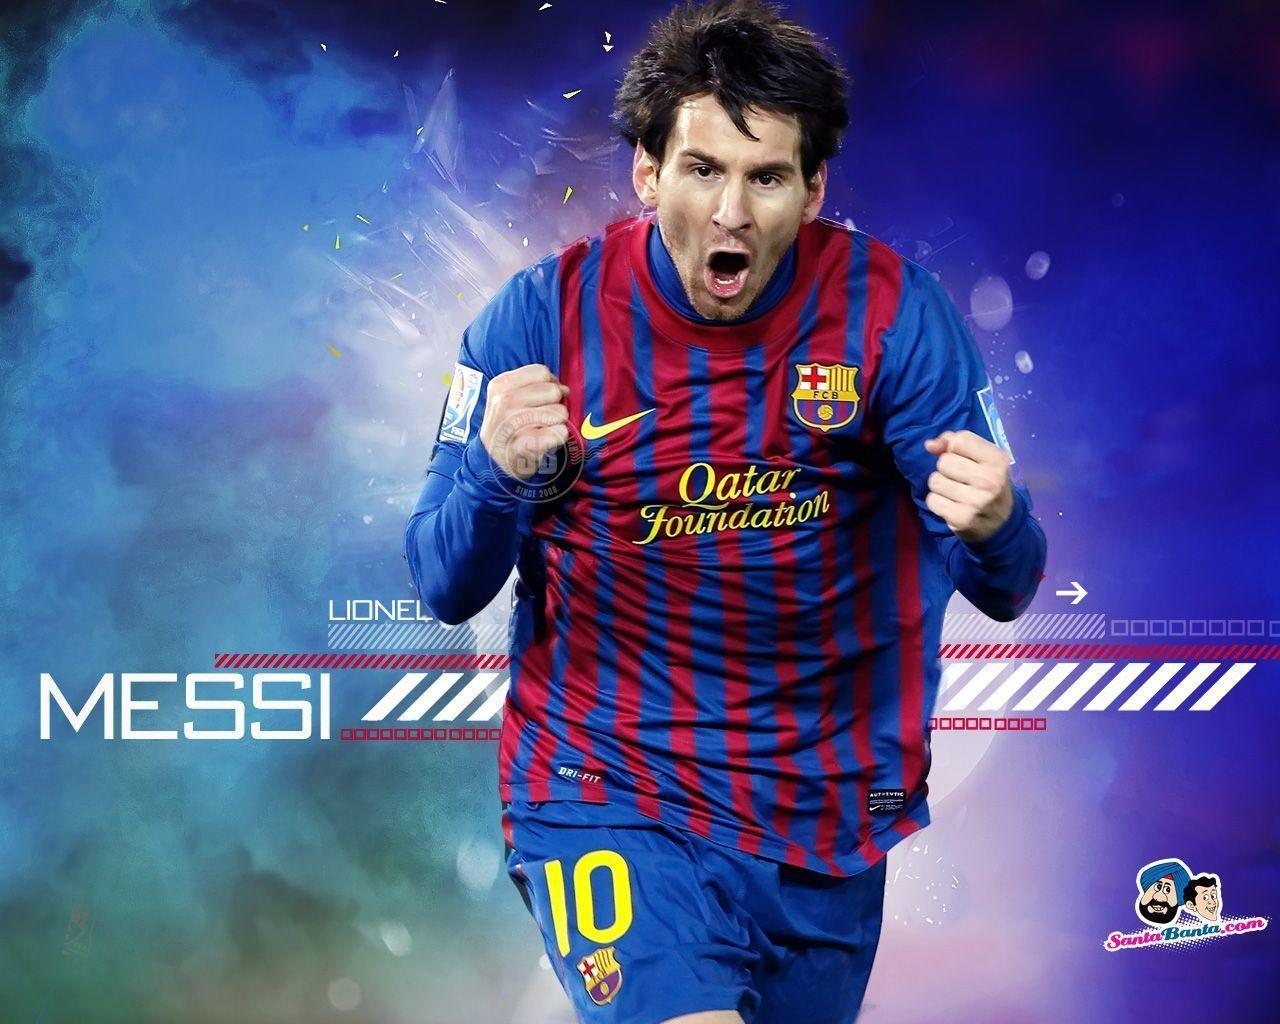 Lionel Messi 2016 Wallpapers HD 1080p 1280x1024